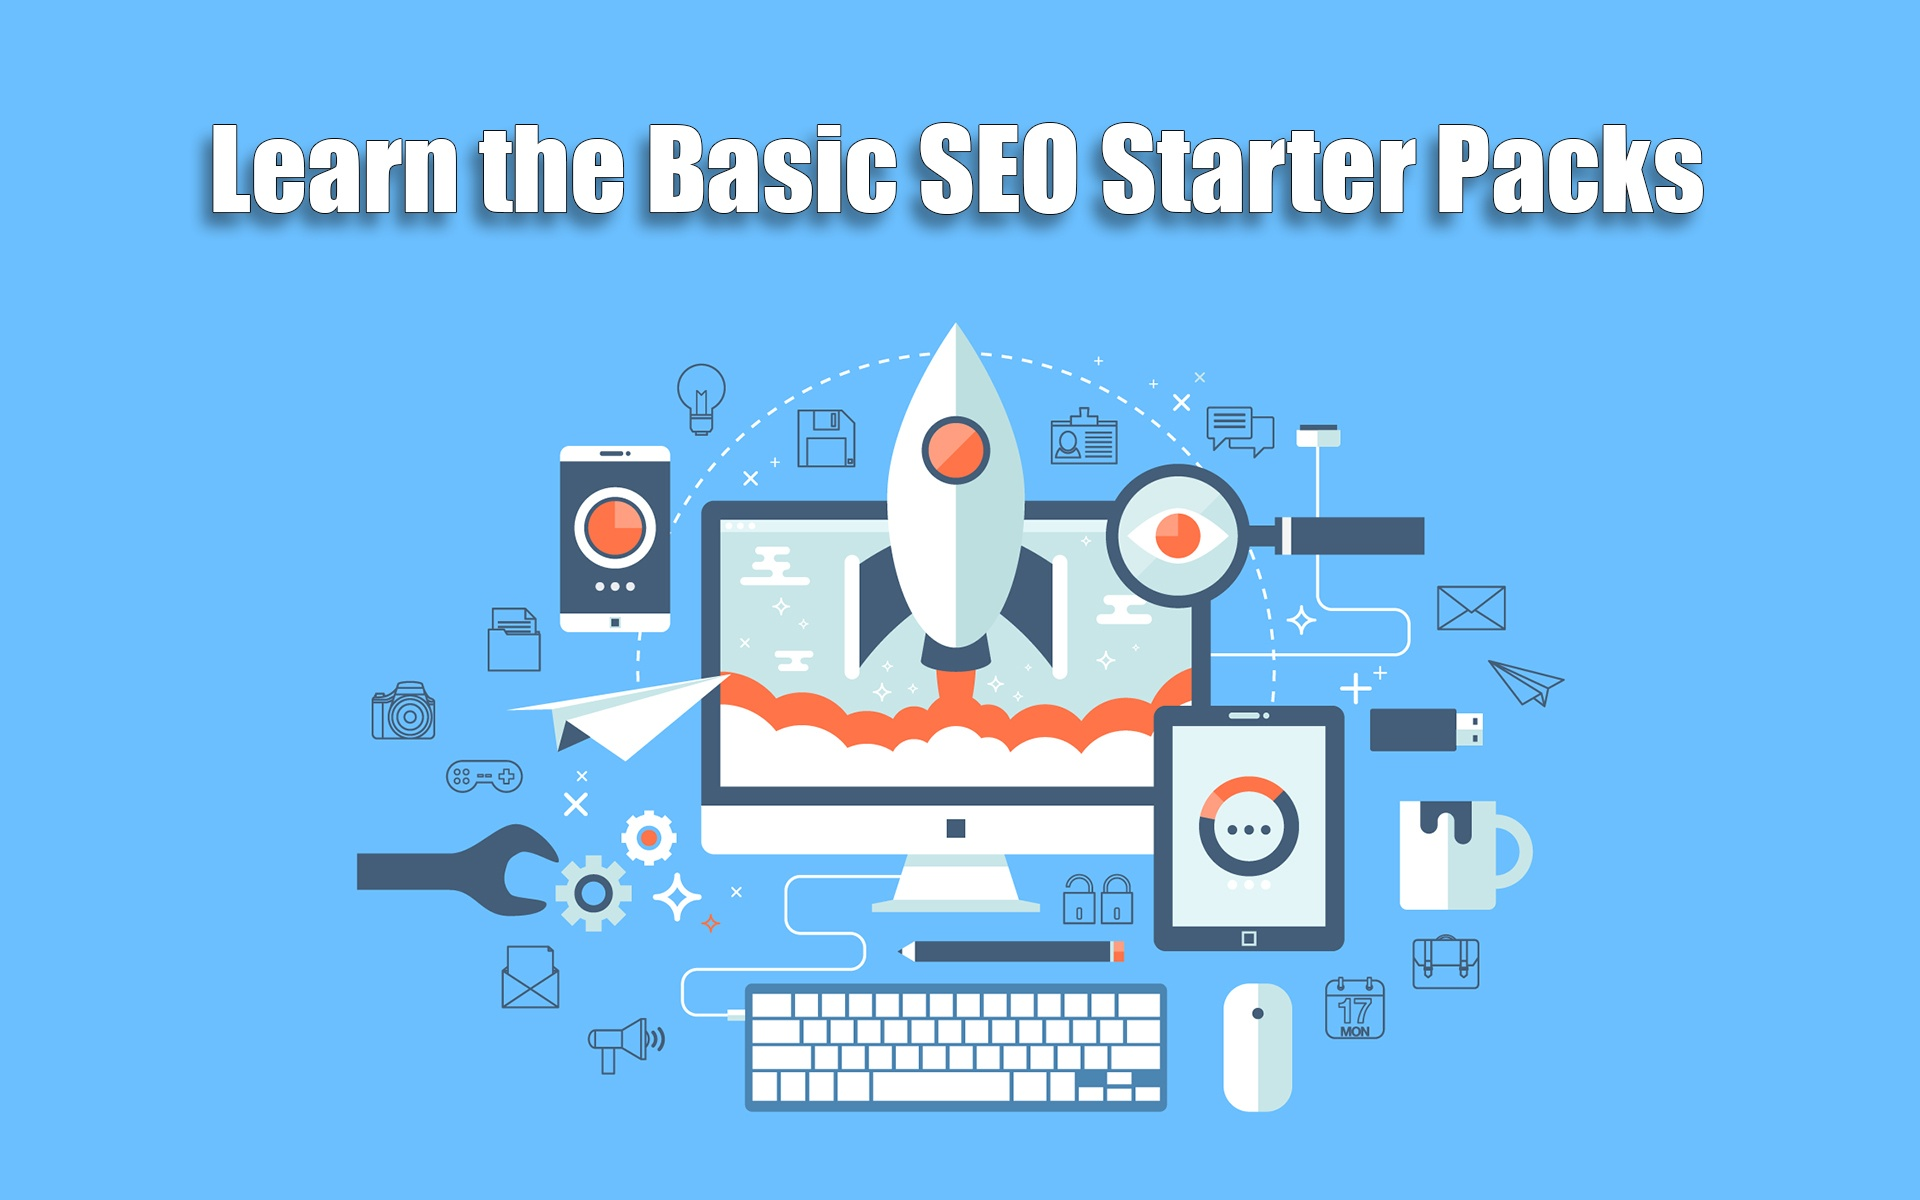 Learn the Basic SEO Starter Packs